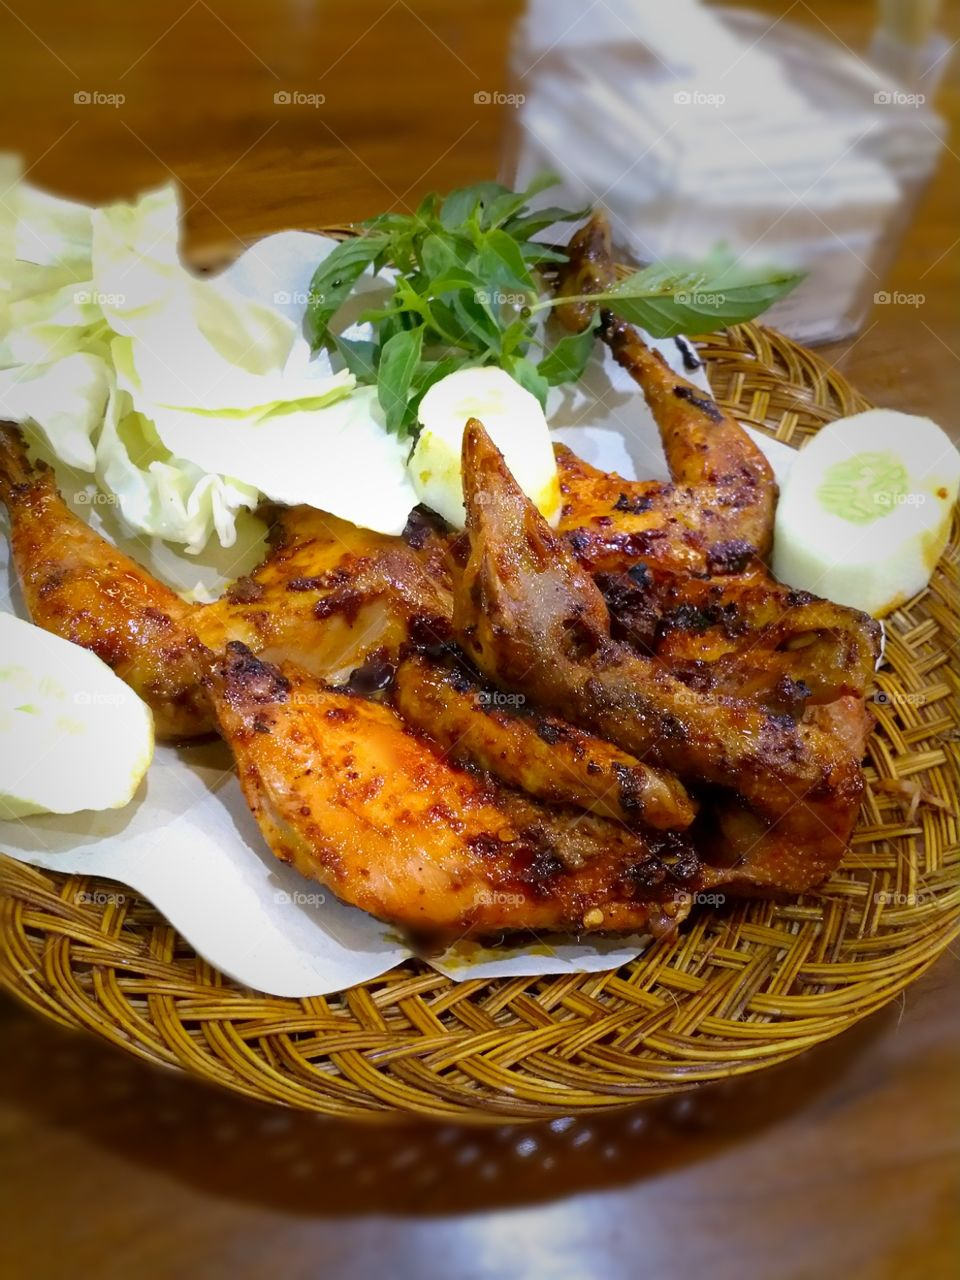 Indonesian food - Grilled Chicken